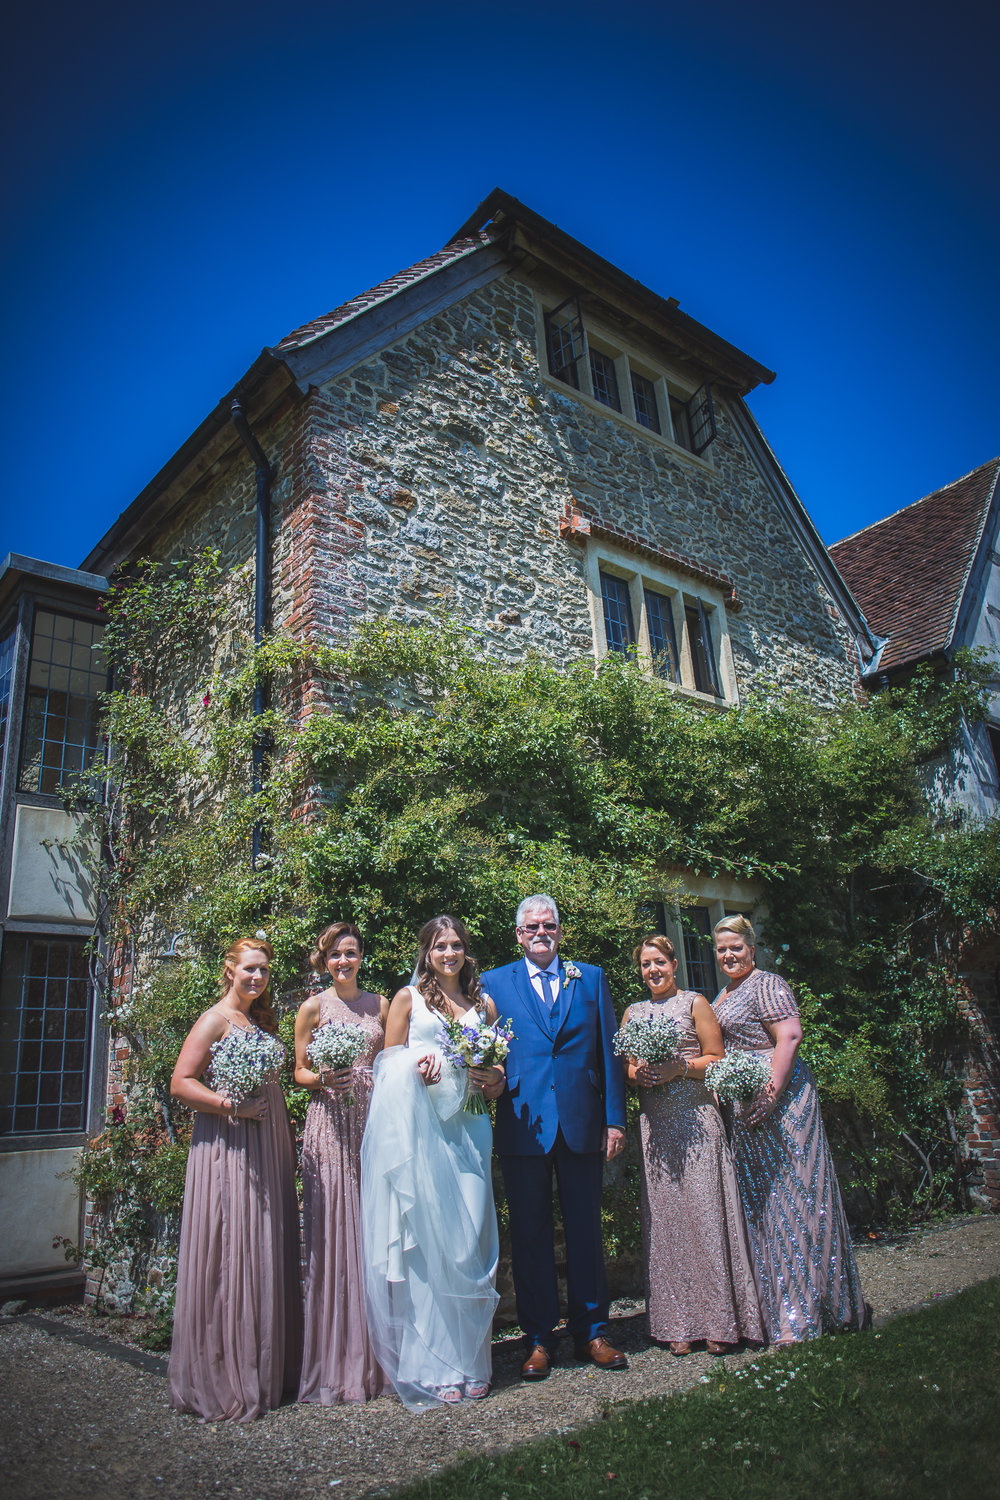 Grittenham Barn female wedding photographers west sussex petworth social-43.jpg